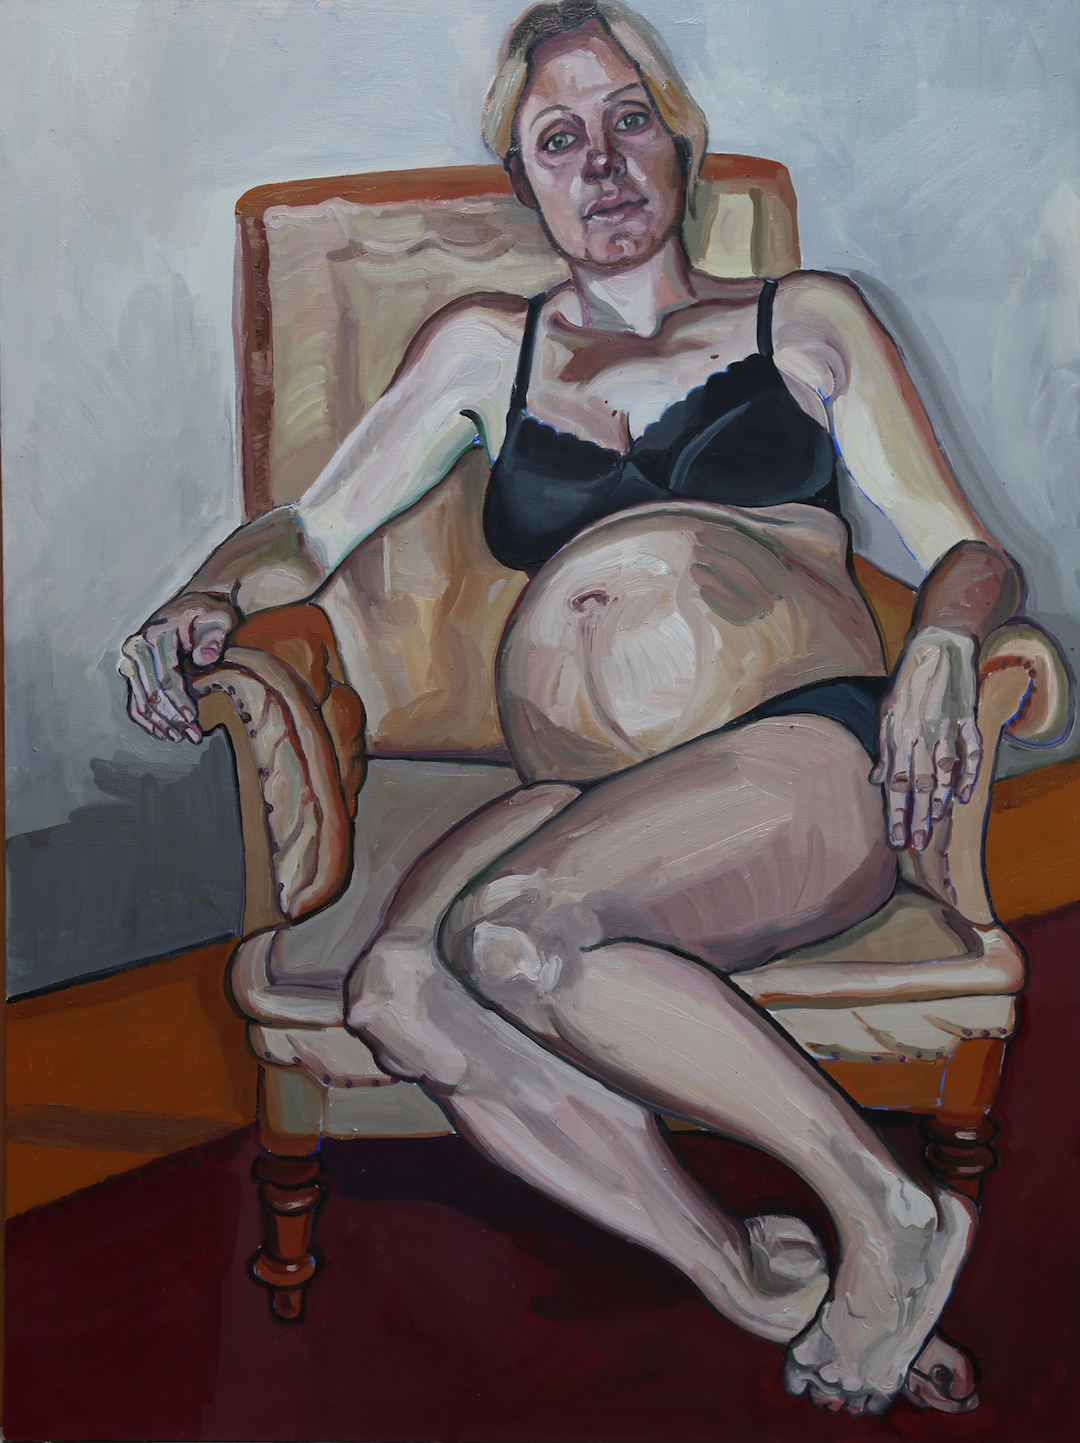 Waiting for Rex Susanne du Toit Oil on canvas, 102 x 75 cm, 2015